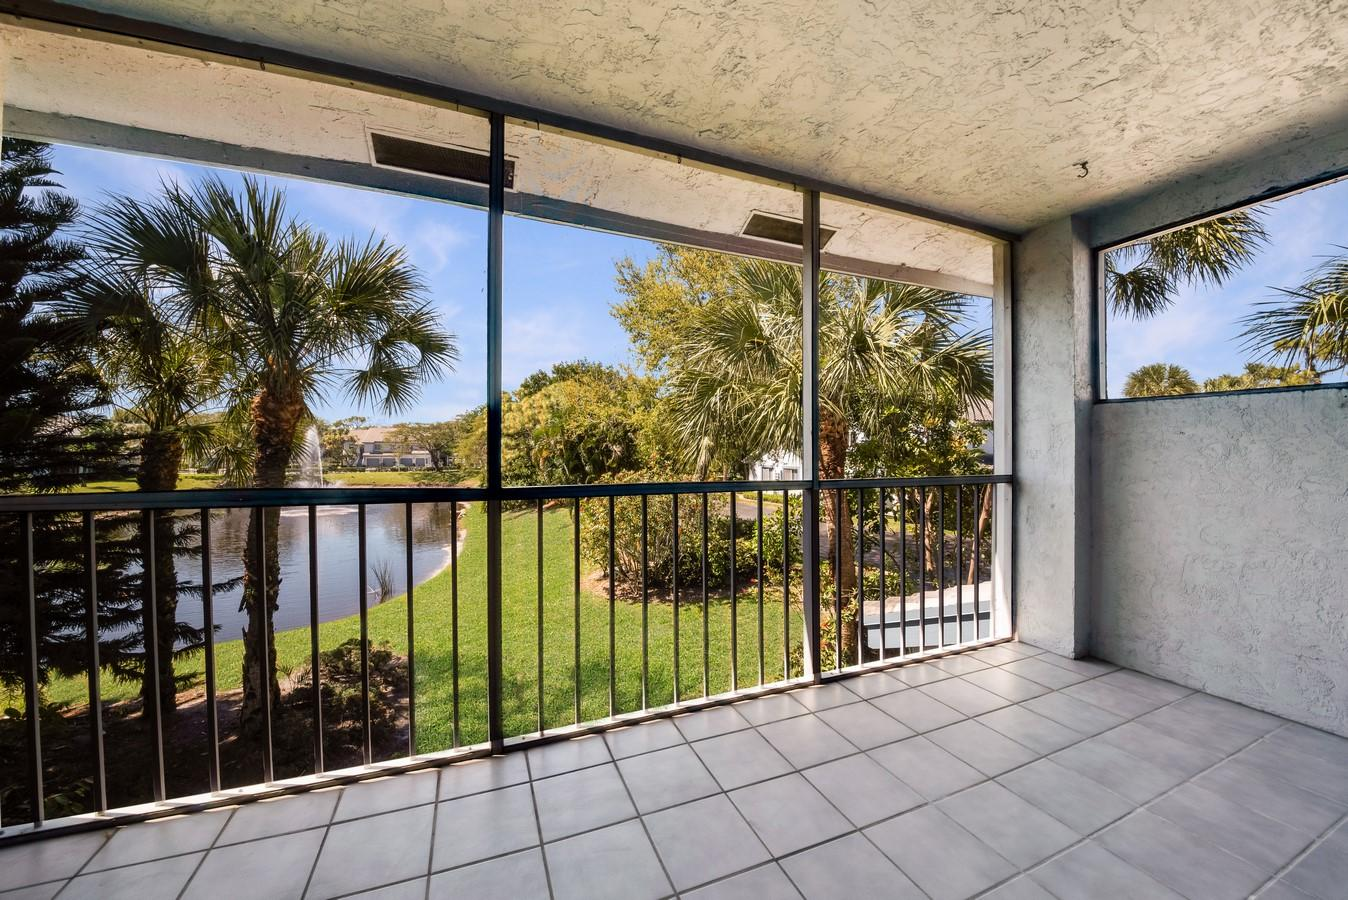 9761 Nickels Boulevard 308 Boynton Beach, FL 33436 small photo 28